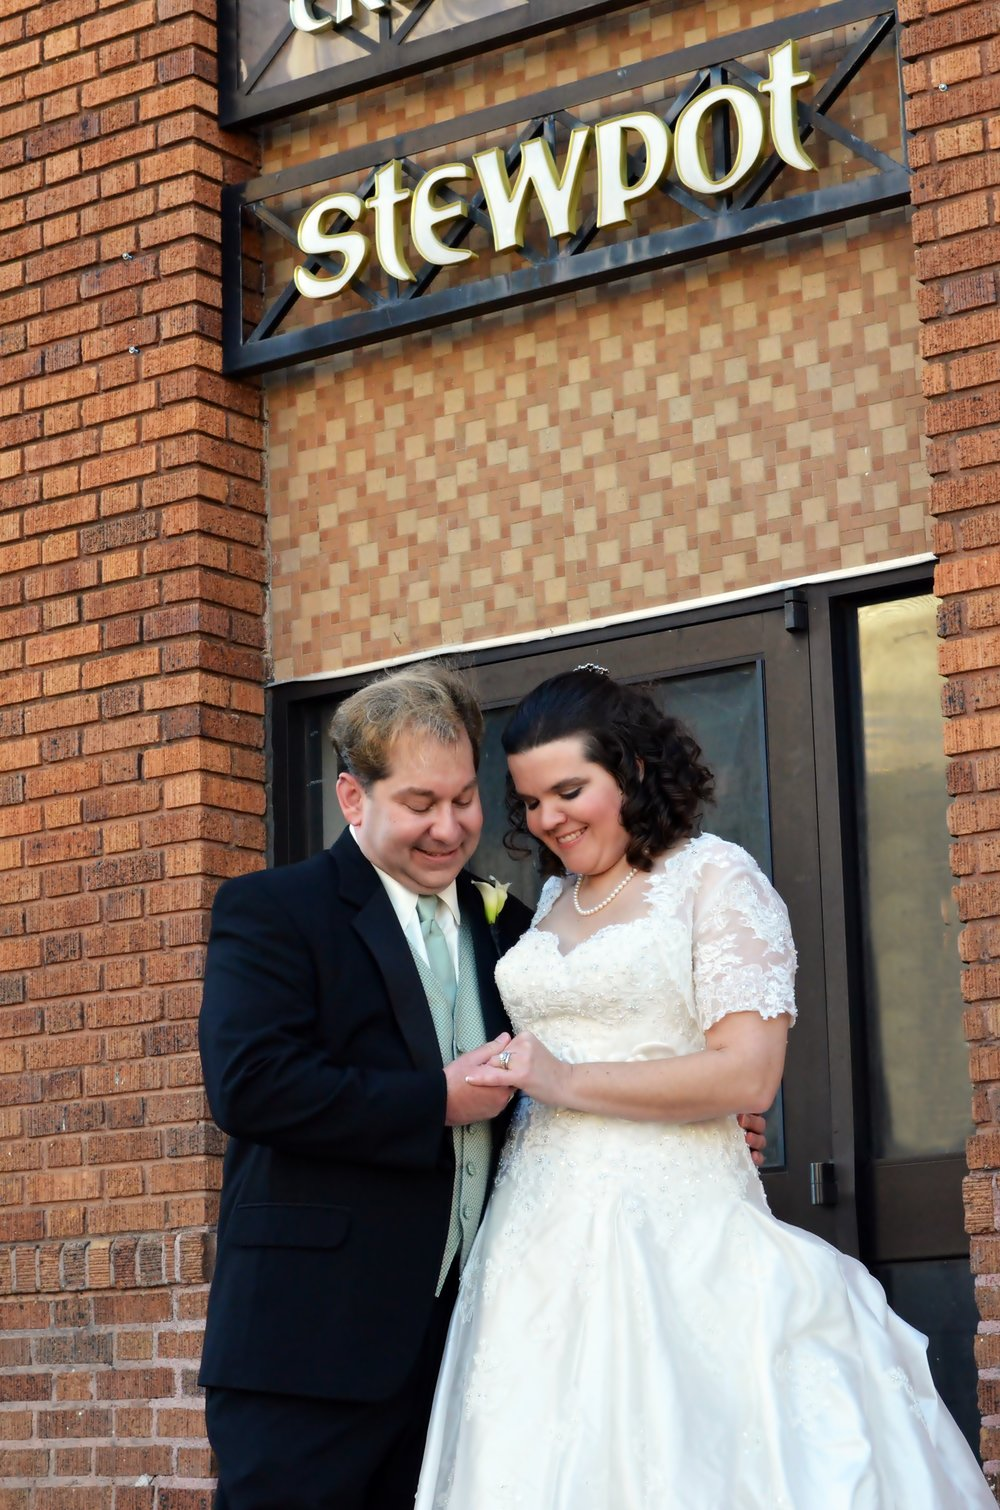 Scott & Suzanne on their wedding day